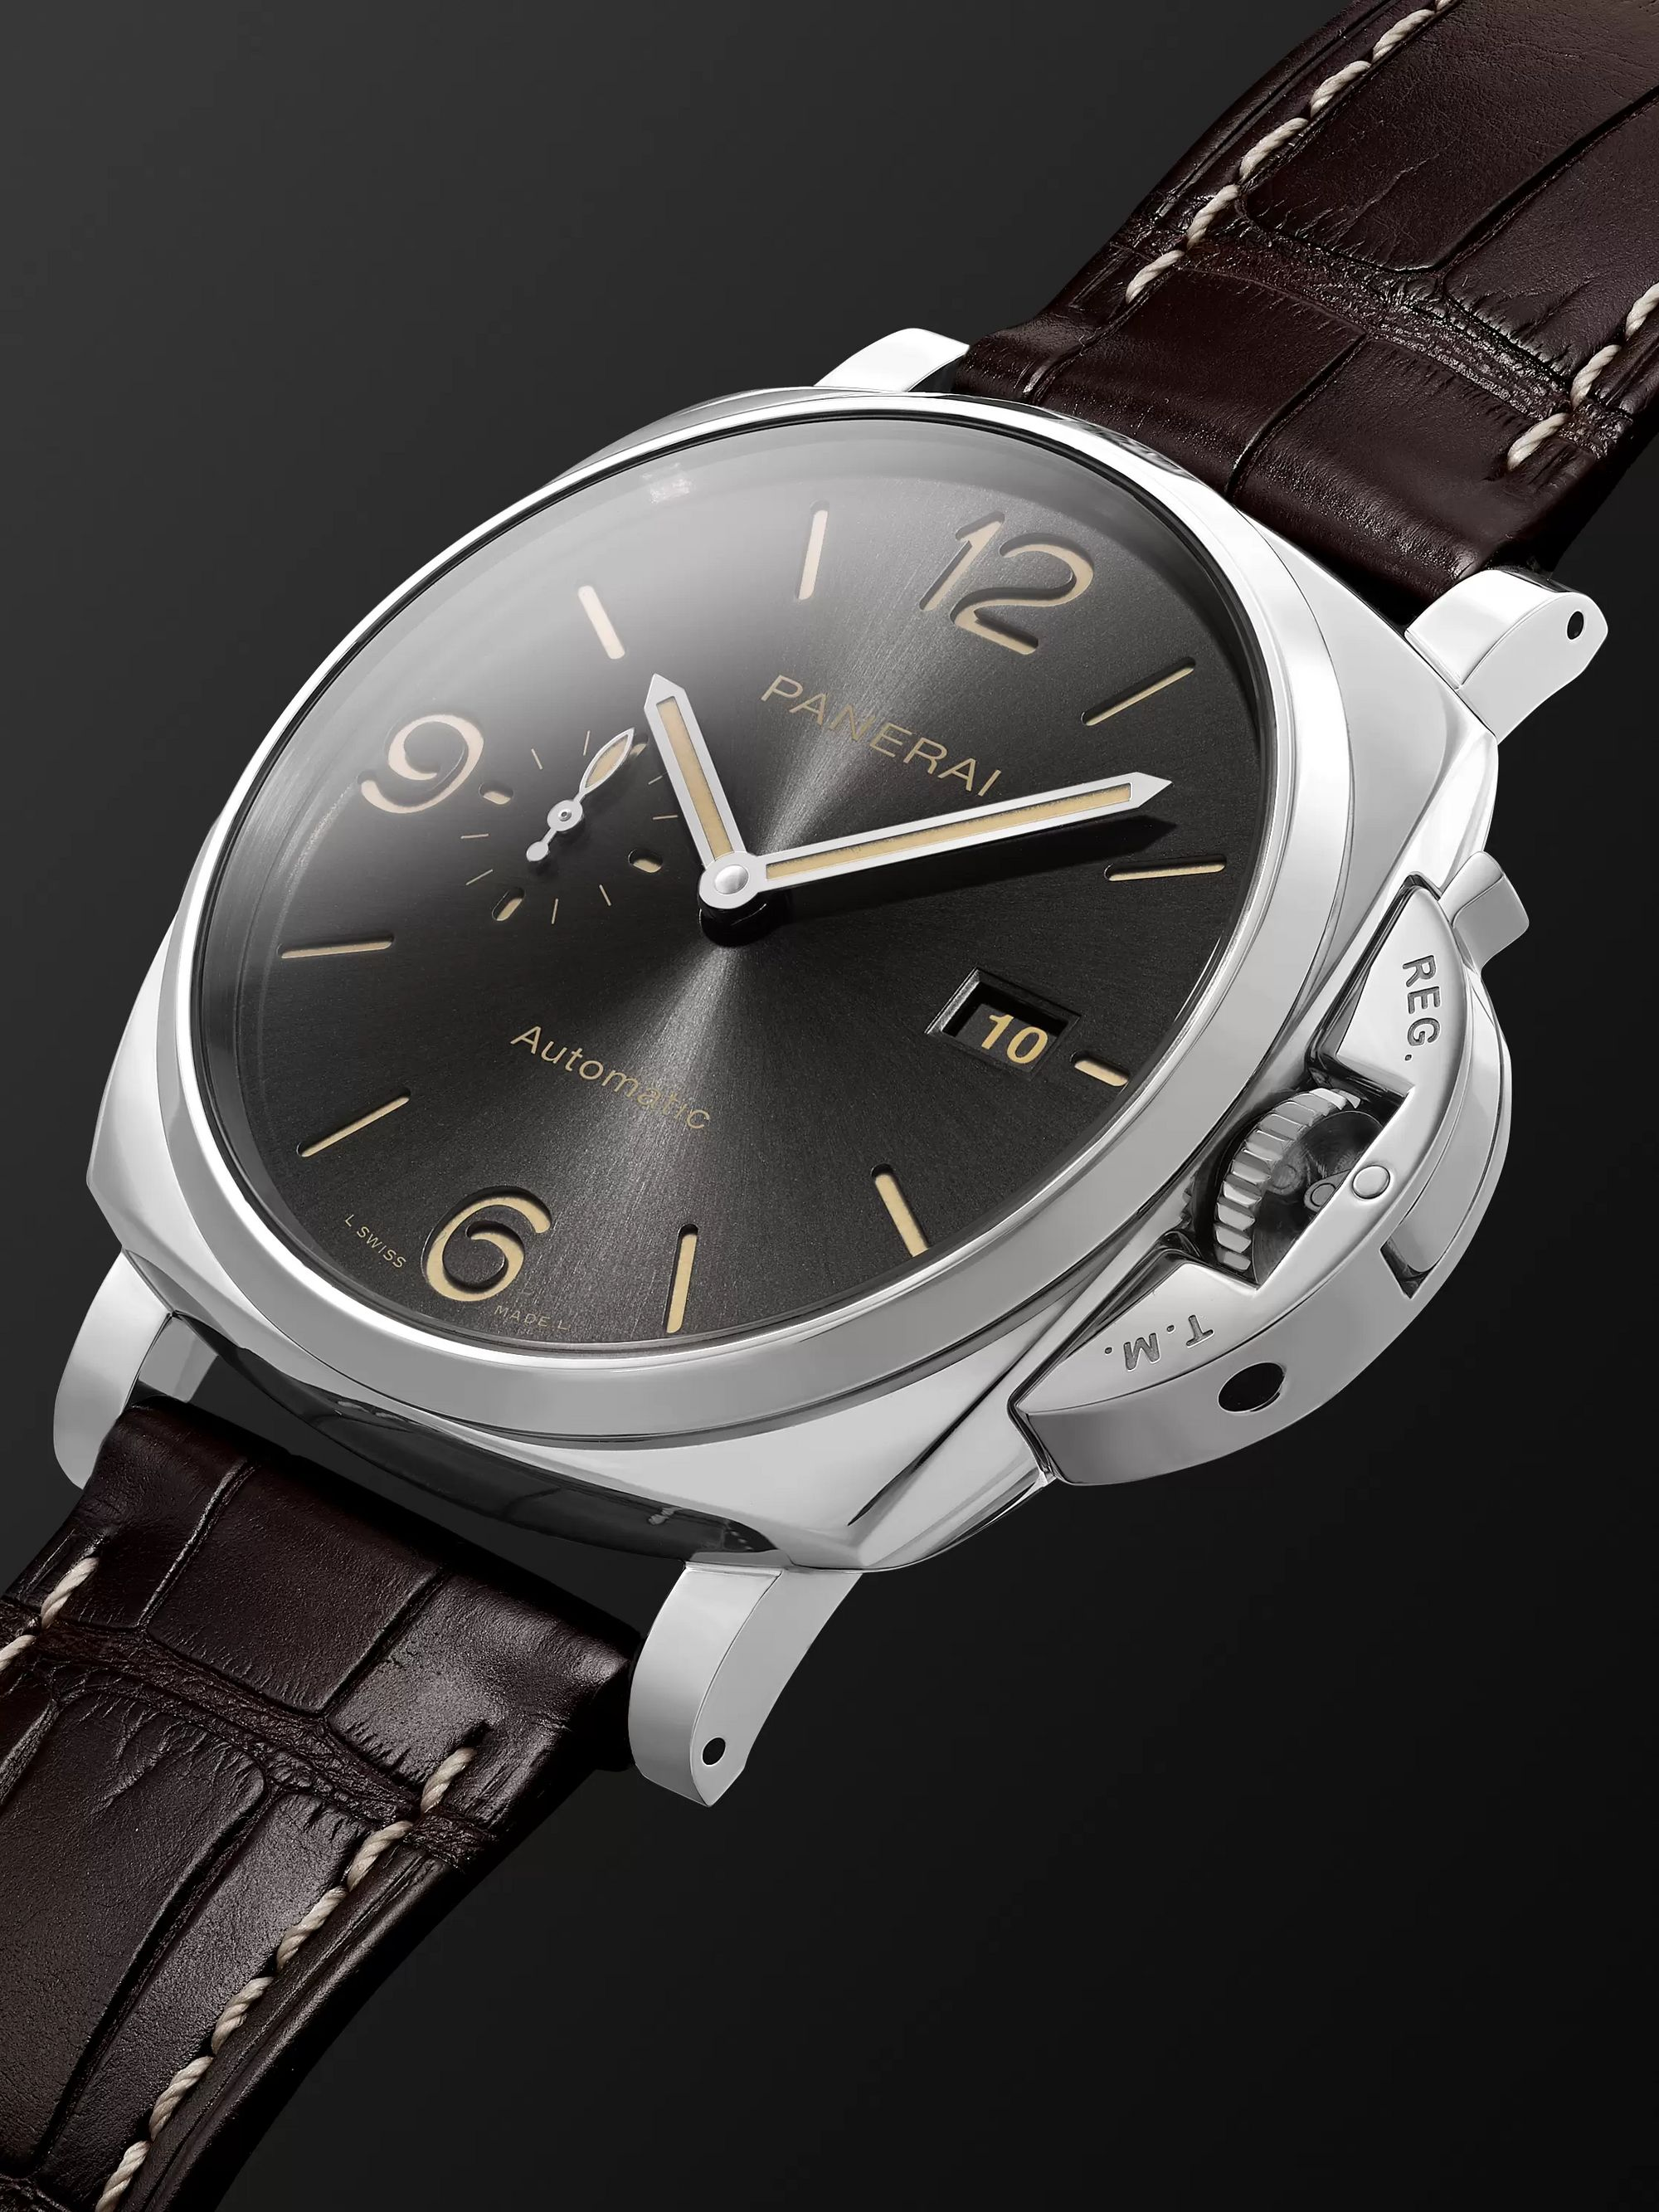 Panerai Luminor Due Automatic 45mm Stainless Steel and Alligator Watch